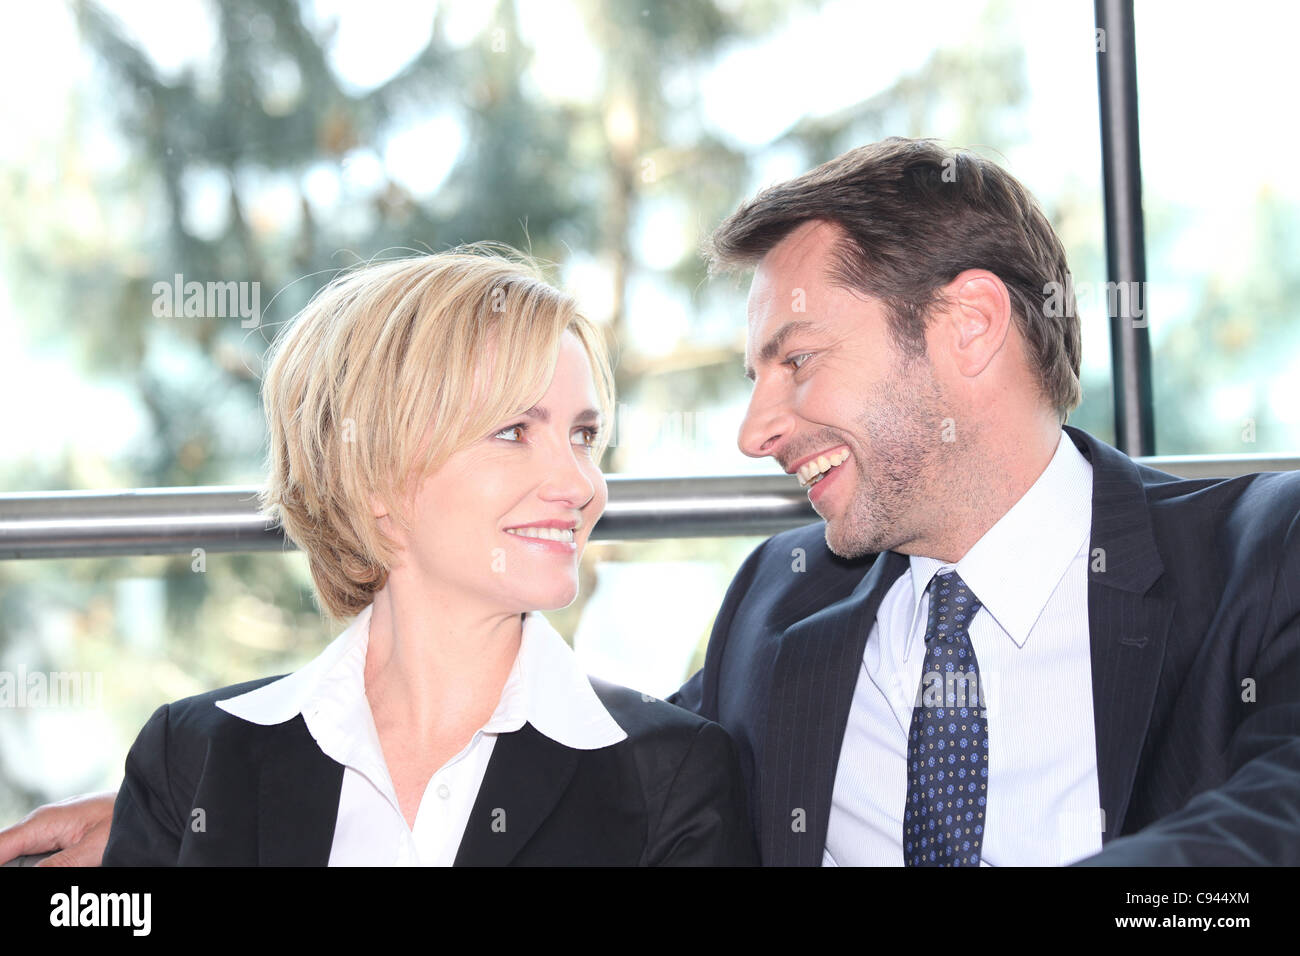 Accomplice couple - Stock Image